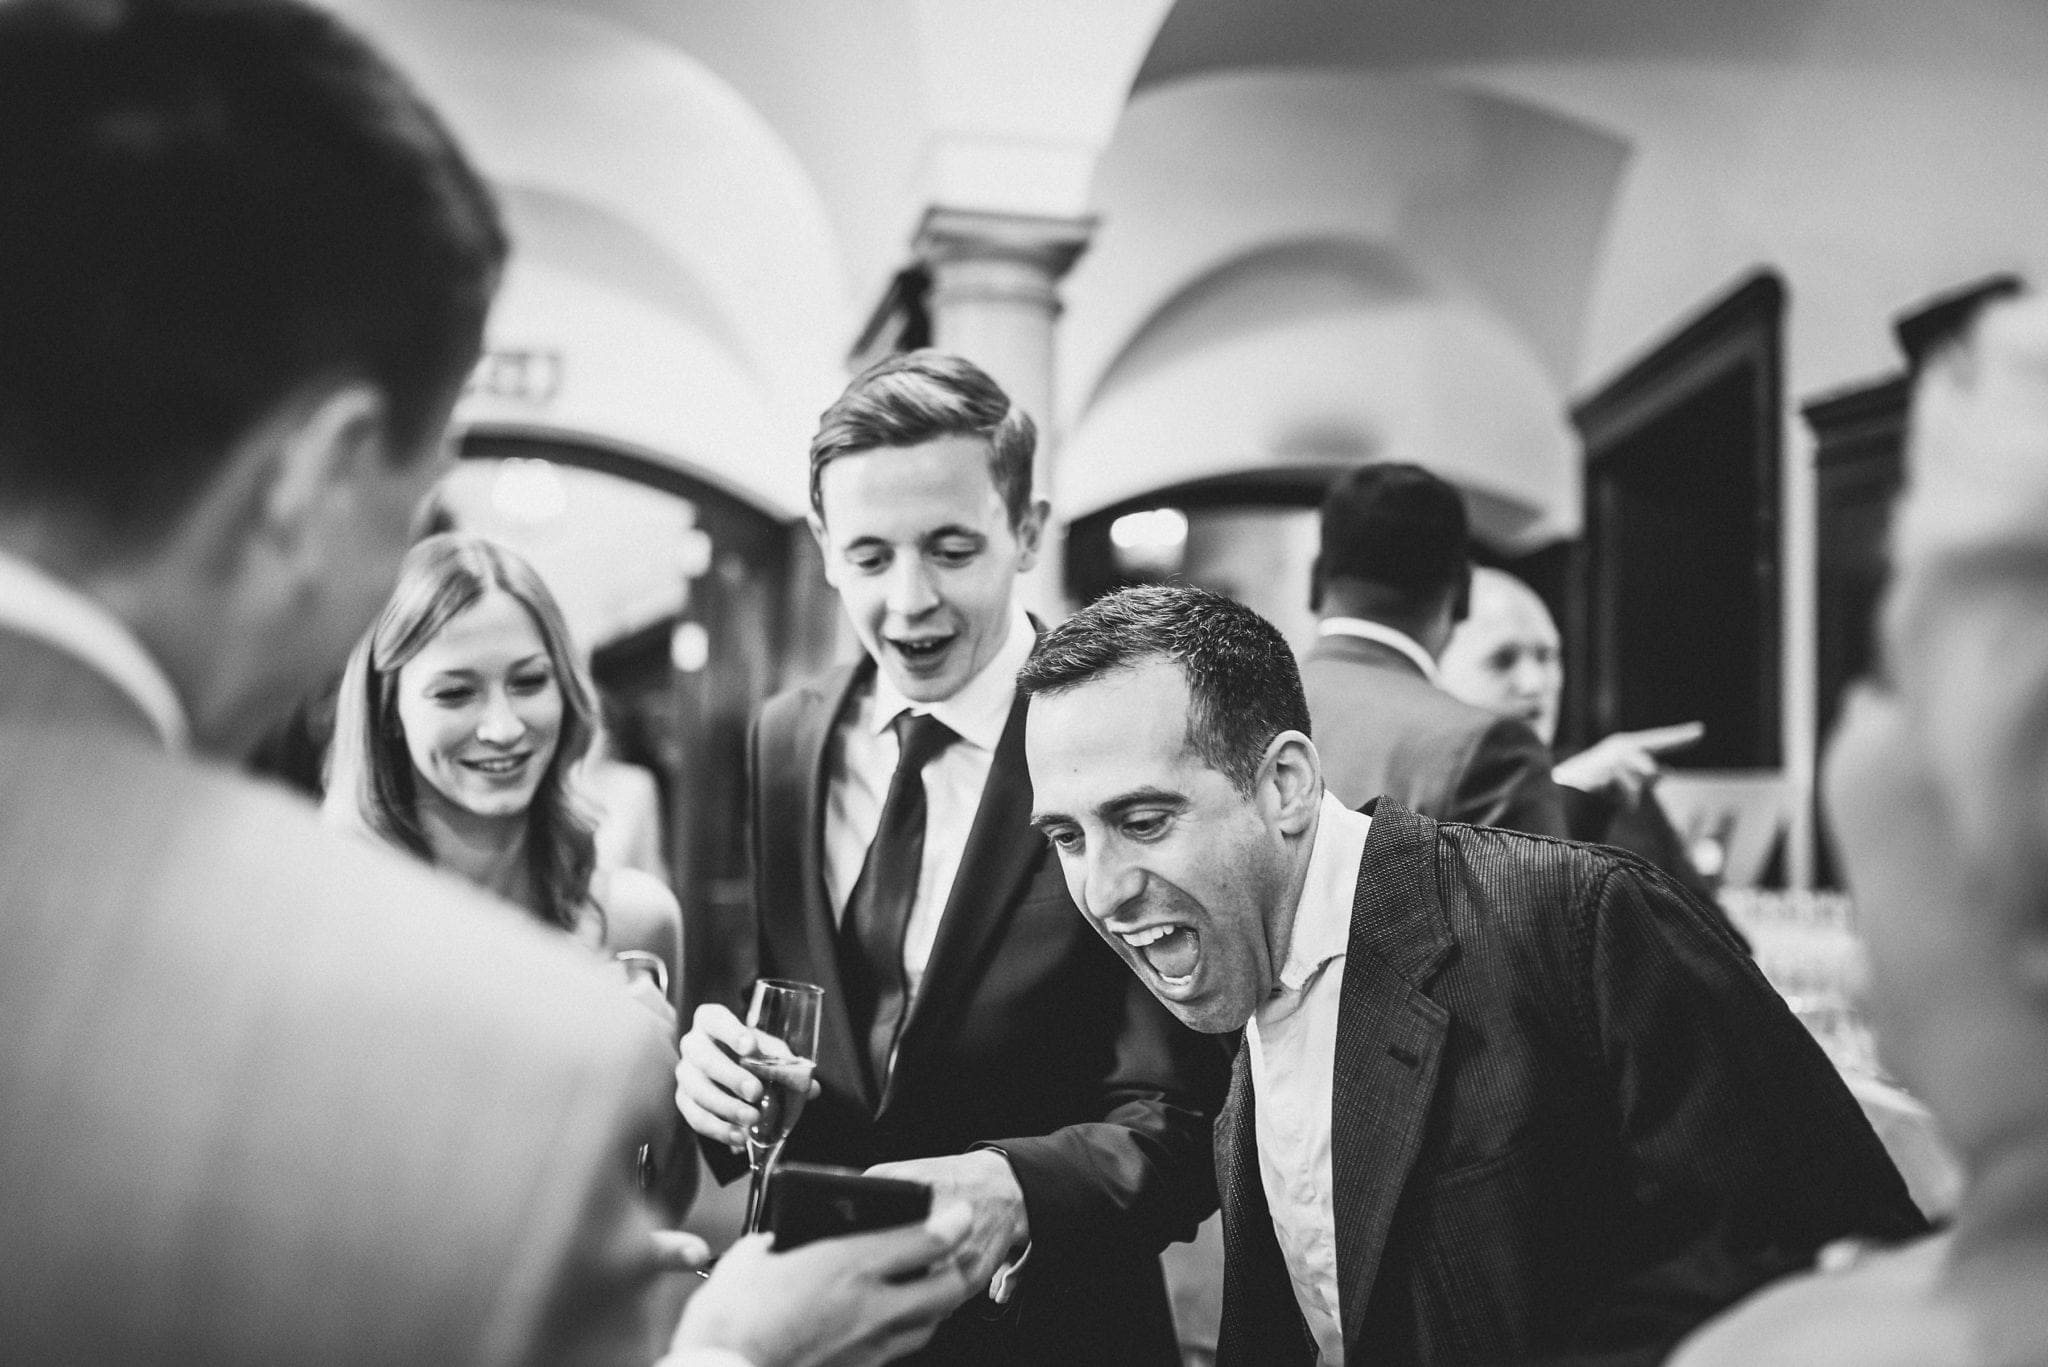 Black and white shot of guests laughing at something on an iPhone